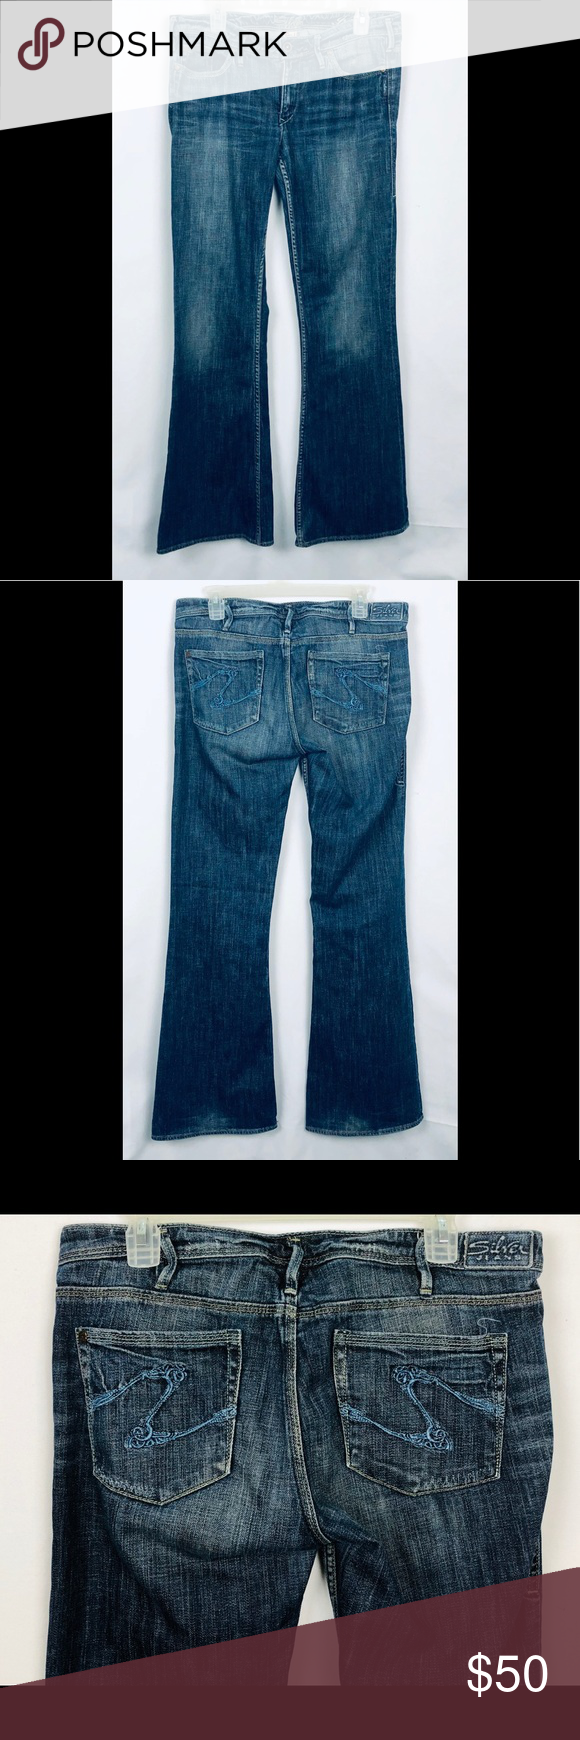 2e7e835b47c Silver Jeans Flare Isabel Size 32 Preowned Silver Isabel Flare Jeans made  in Canada Size 32